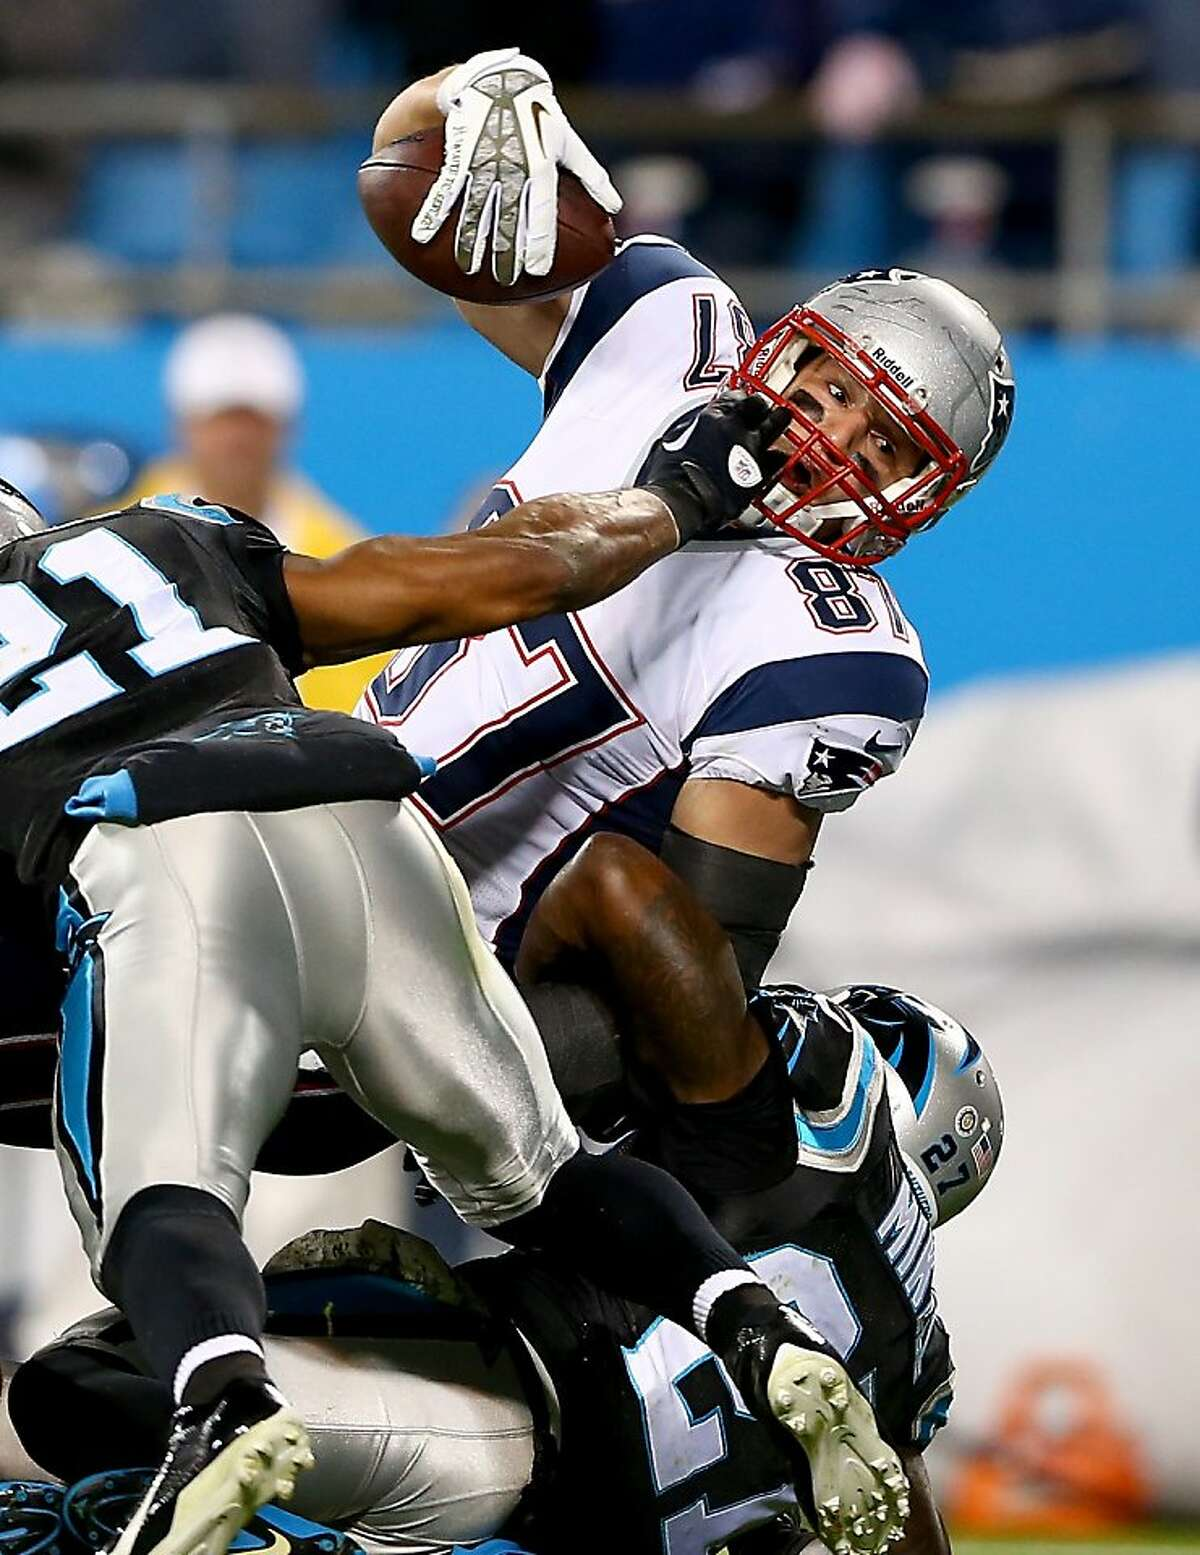 Rob Gronkowski #87 of the New England Patriots dives for a touchdown during their game against the Carolina Panthers at Bank of America Stadium on November 18, 2013 in Charlotte, North Carolina.